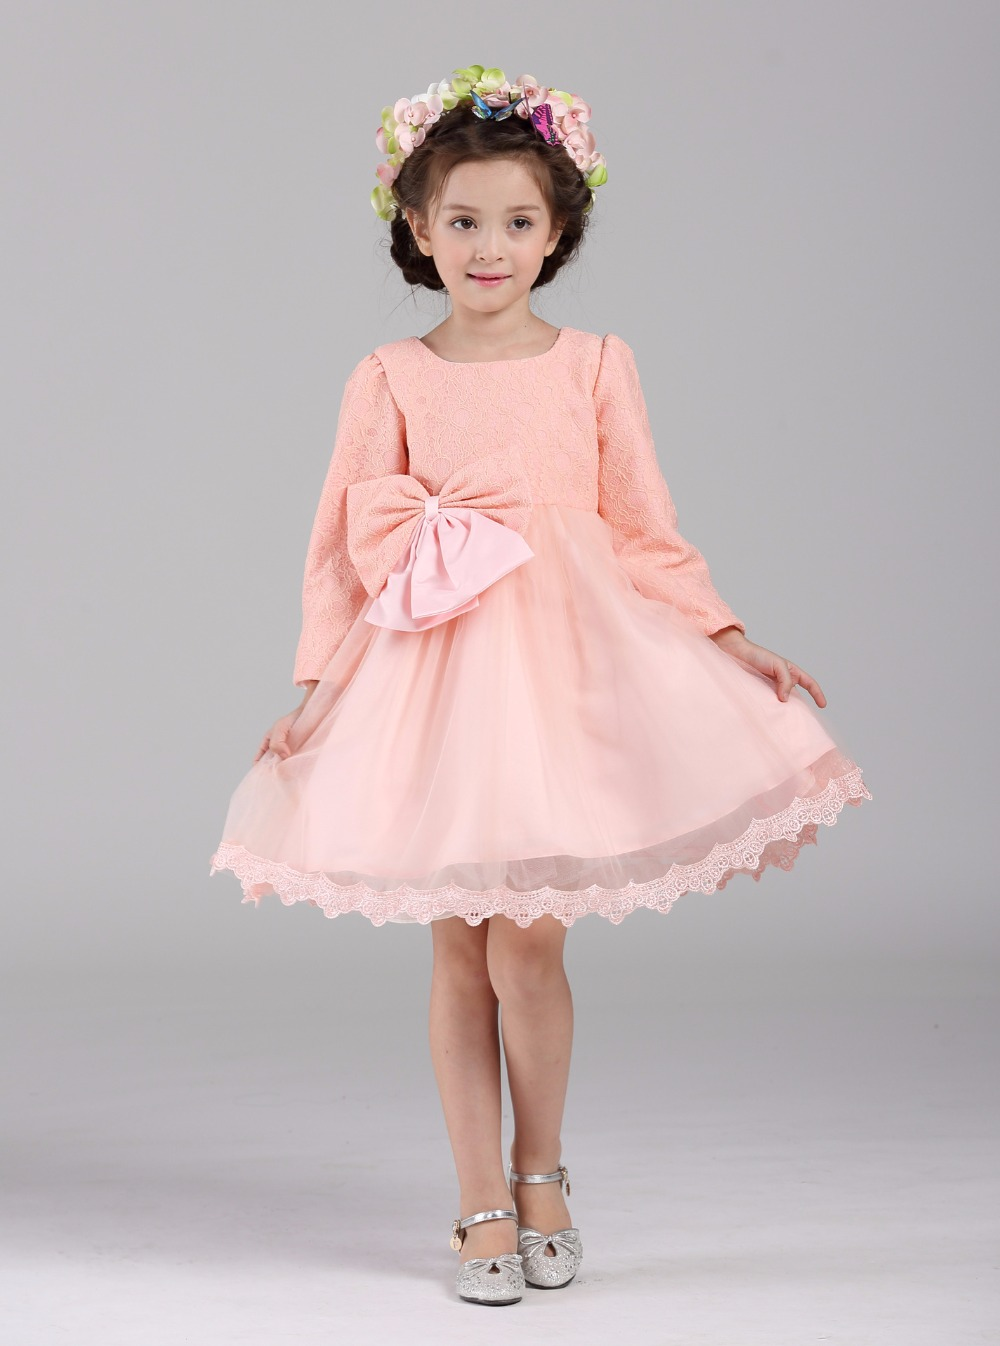 Mind Dresses From Mor Autumn Long Sleeve Children Girls Dresses Communion Autumn Long Sleeve Children Girls Dresses Communion Dressesfor Girls Lace Kids Dresses wedding dress Long Sleeve Dresses